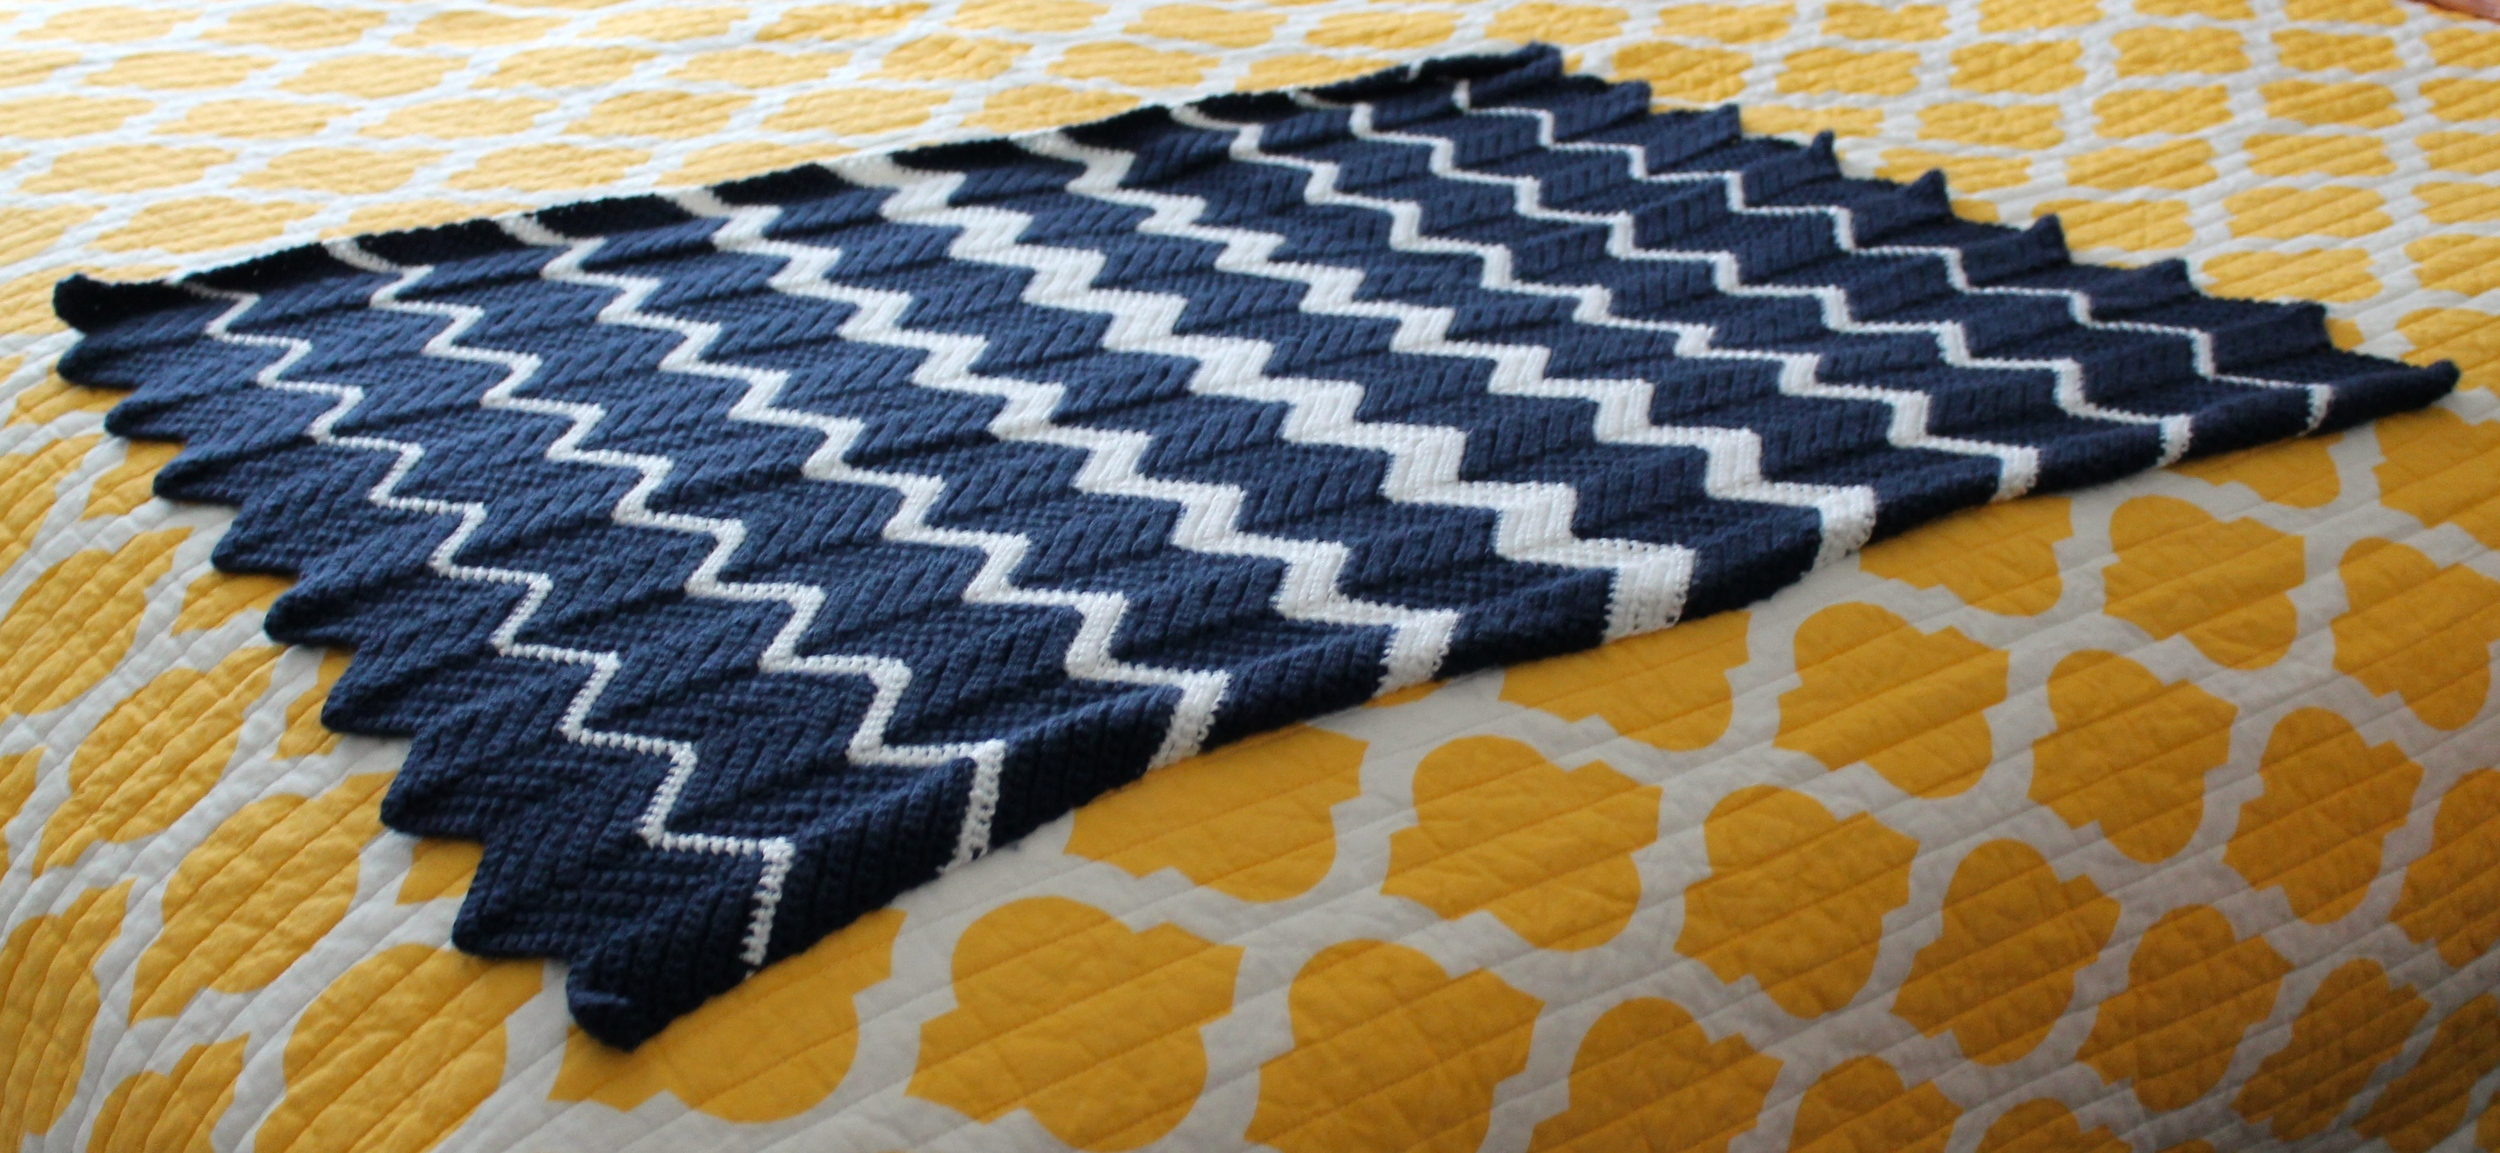 Crocheted blanket with navy and white zig zag stripes